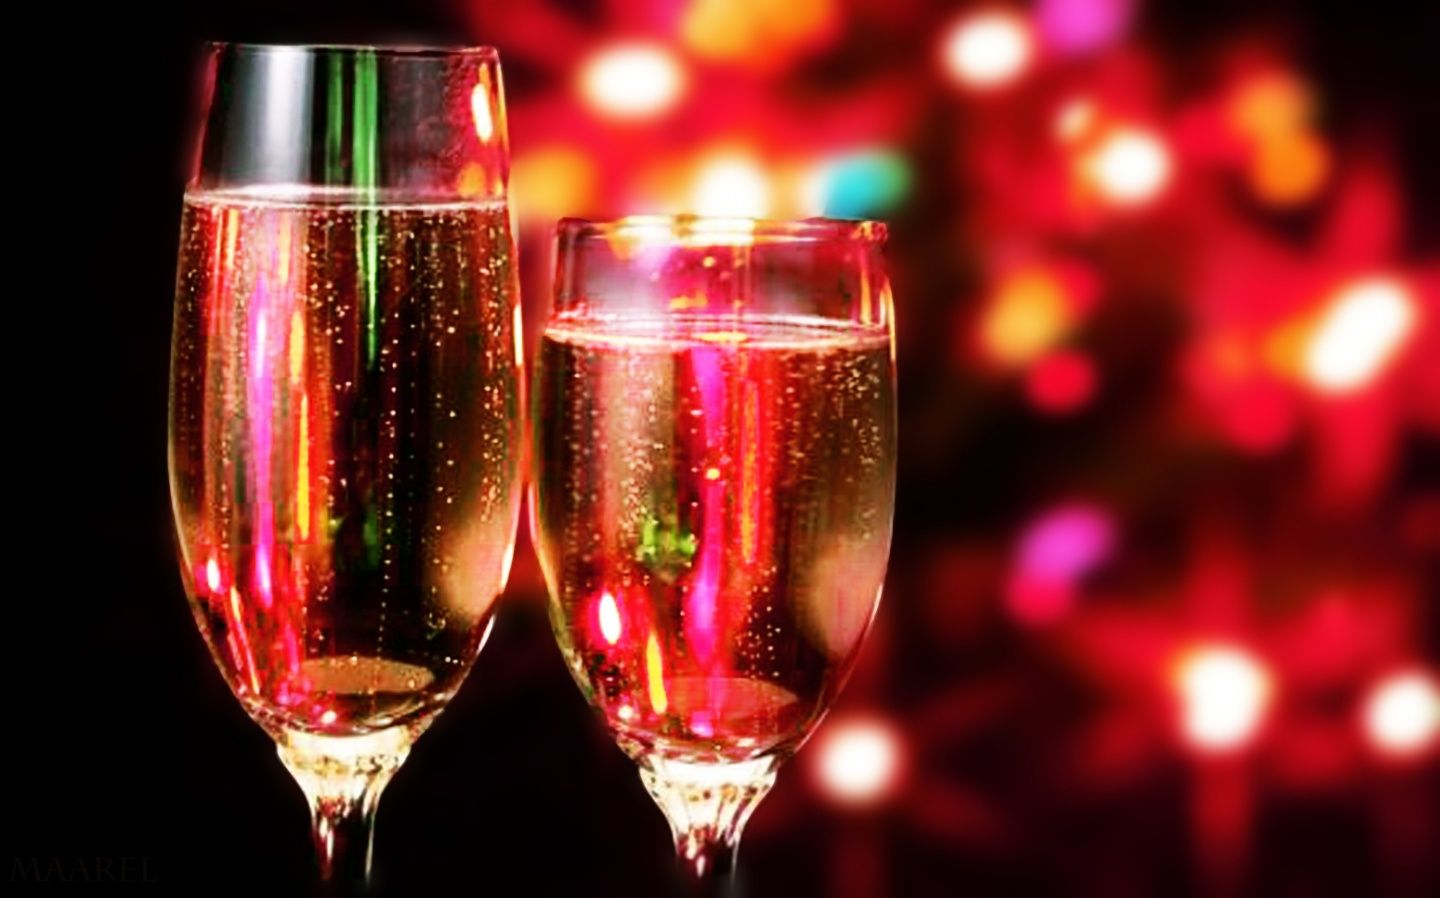 Romantic Champagne Cocktails New Year S Eve Celebrations Happy New Year Wallpaper